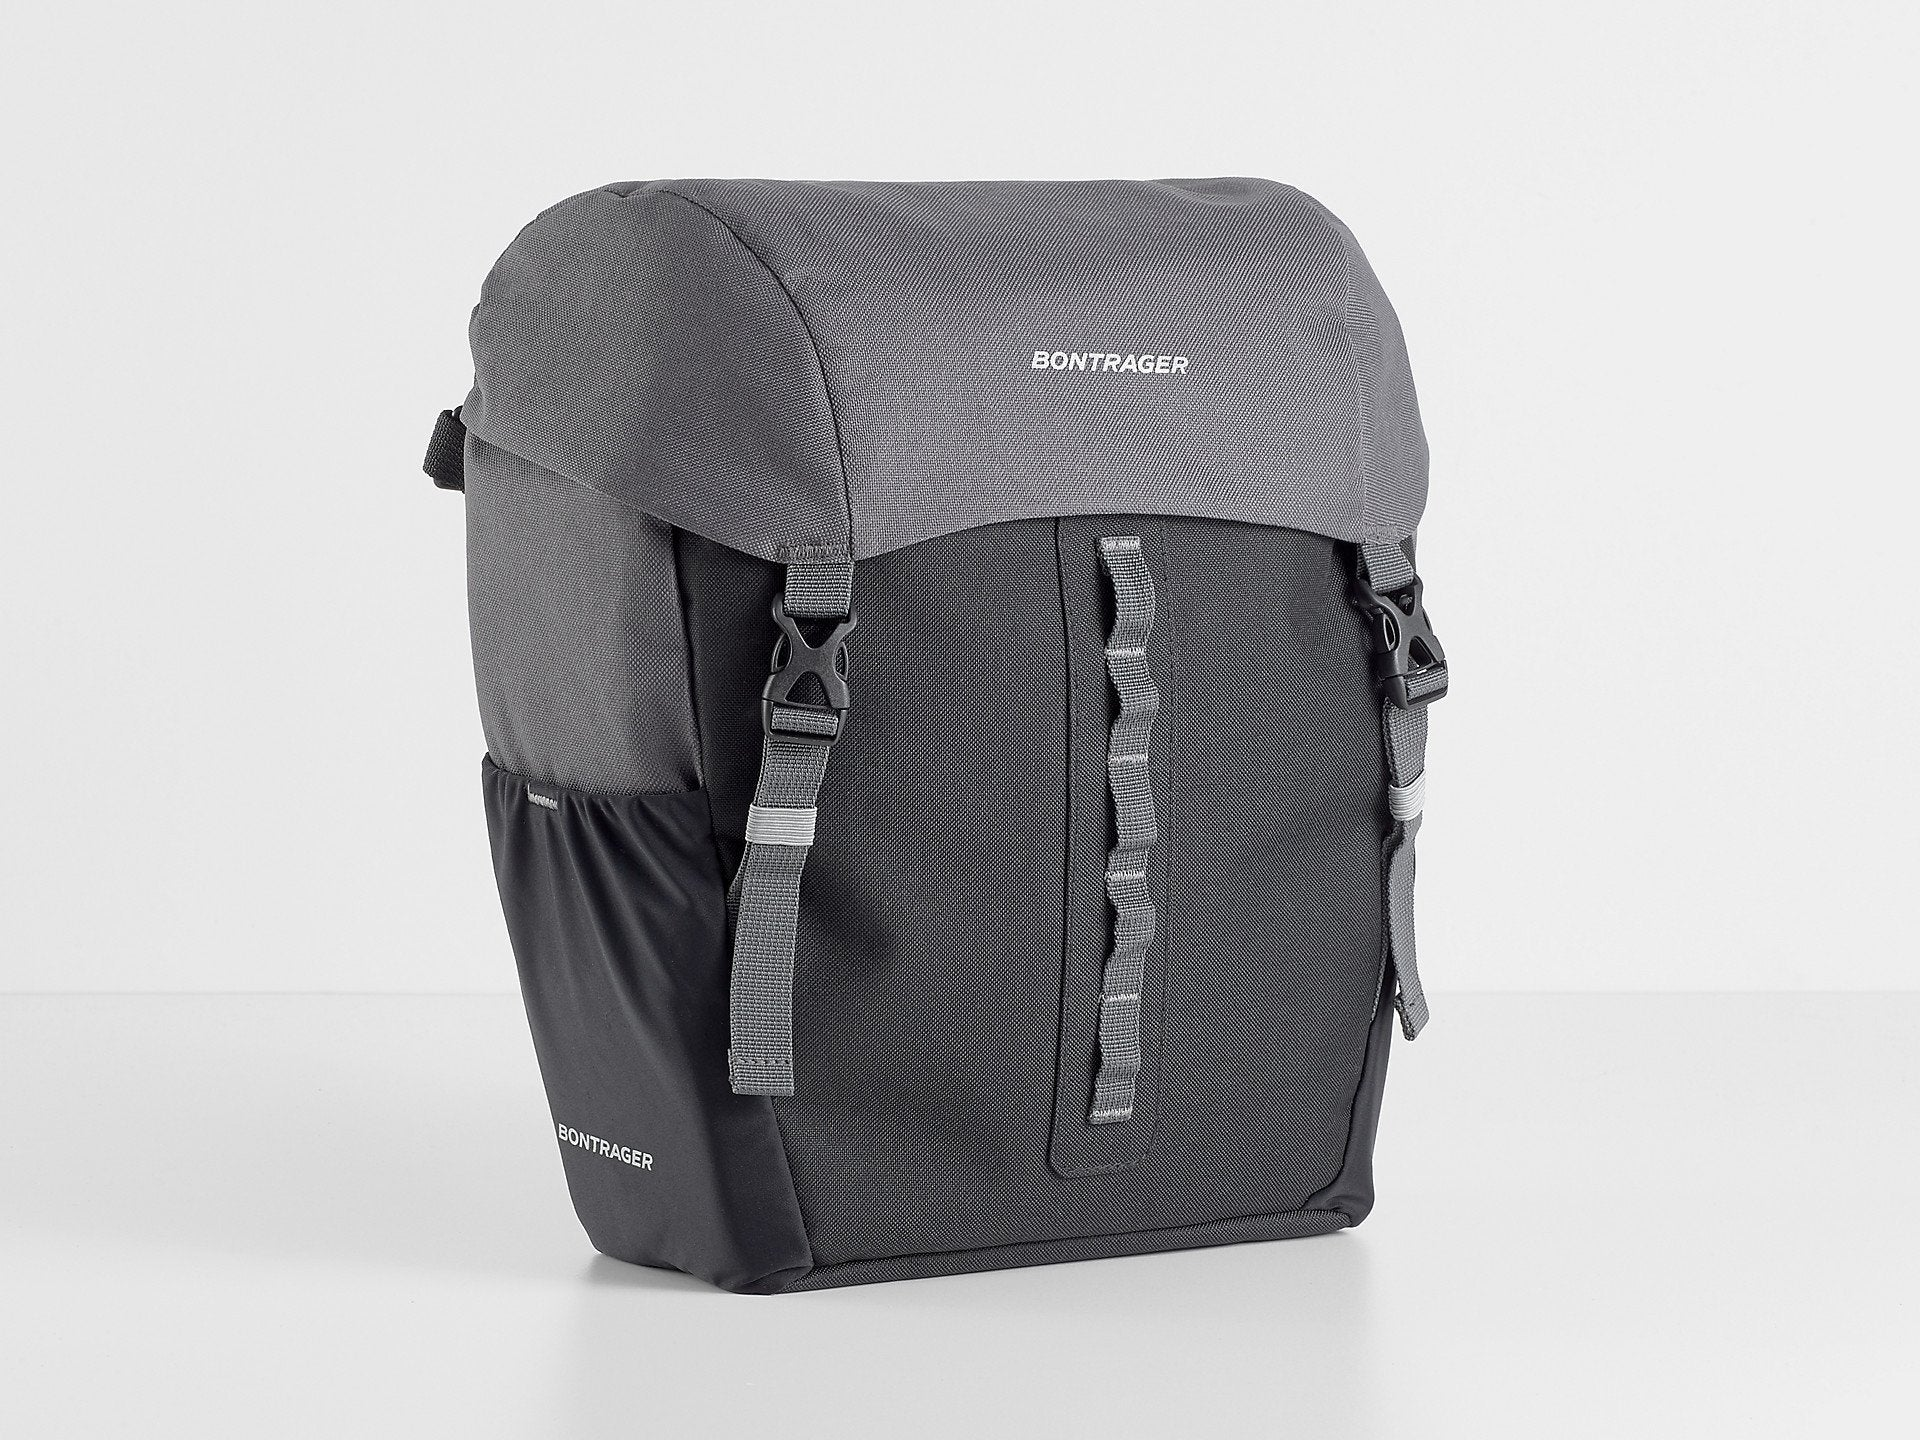 Bag Bontrager Town Single Pannier